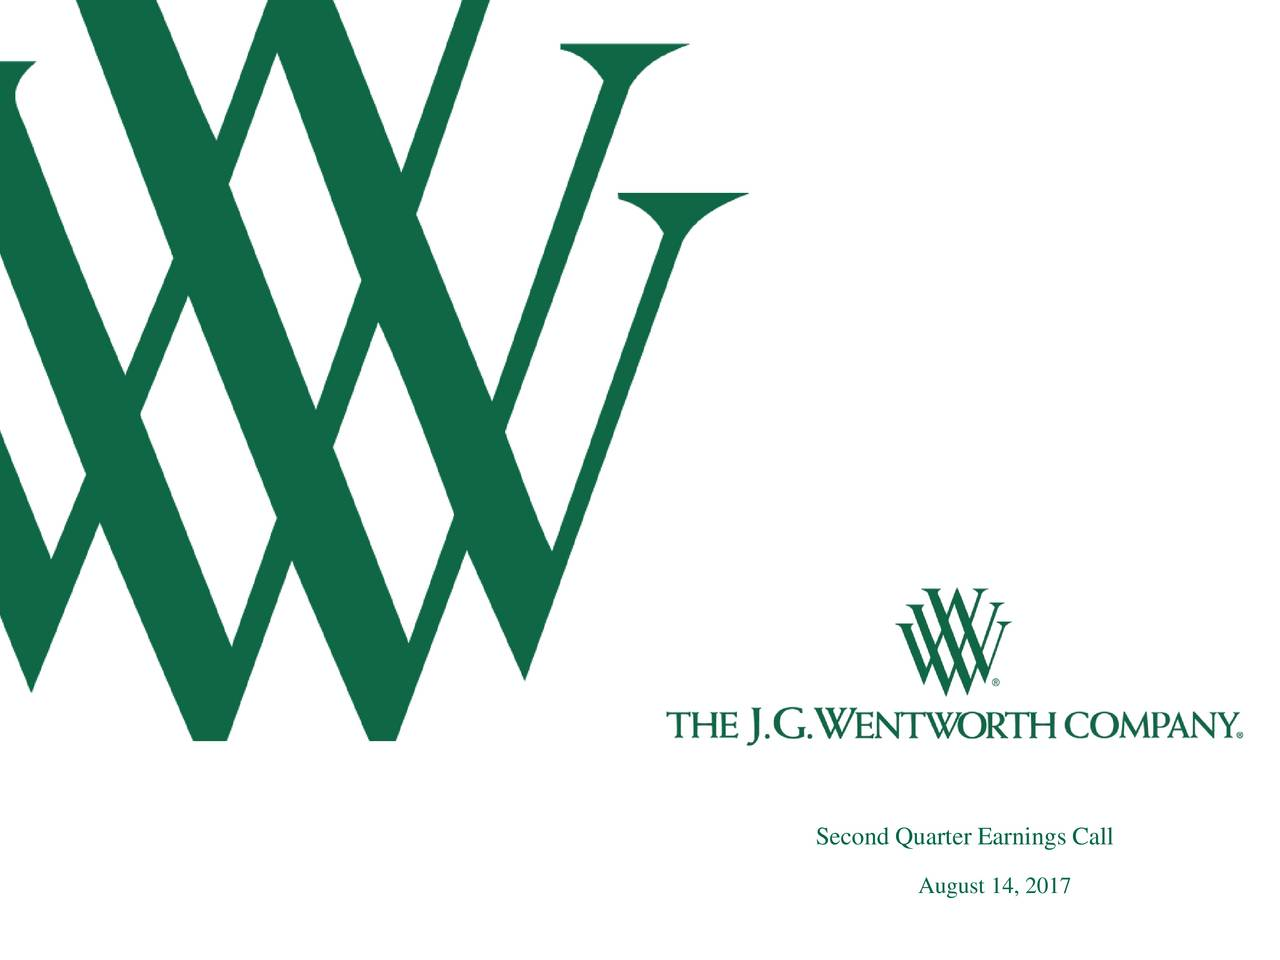 Earnings Call Slides: The J.G. Wentworth CompanyA 2017 Q2